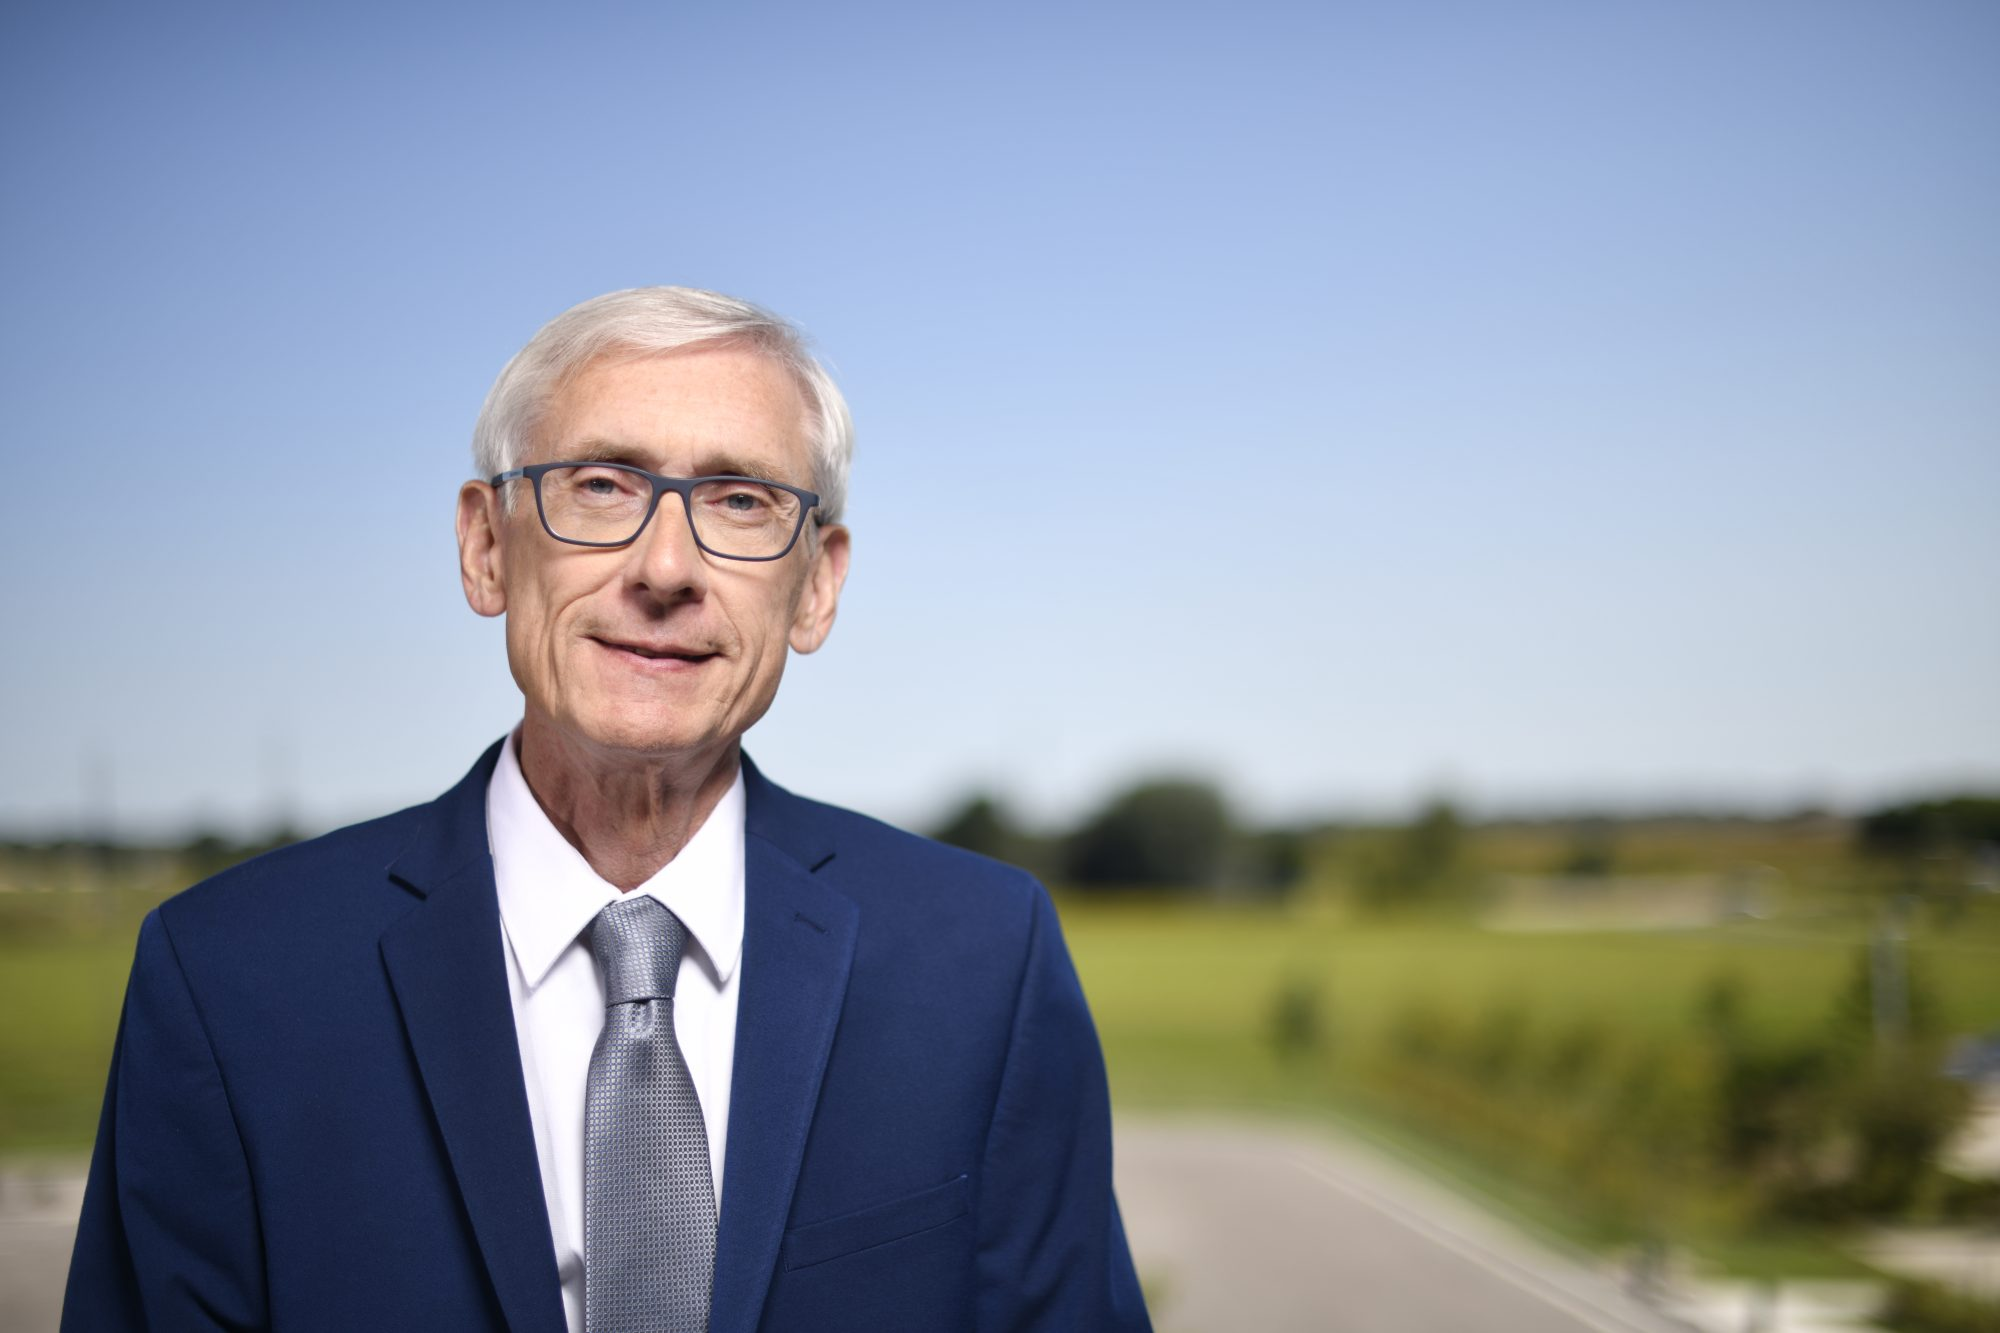 Gov. Evers Announces New Public Health Emergency, Issues New Face Coverings Order as State Continues Vaccine Distribution